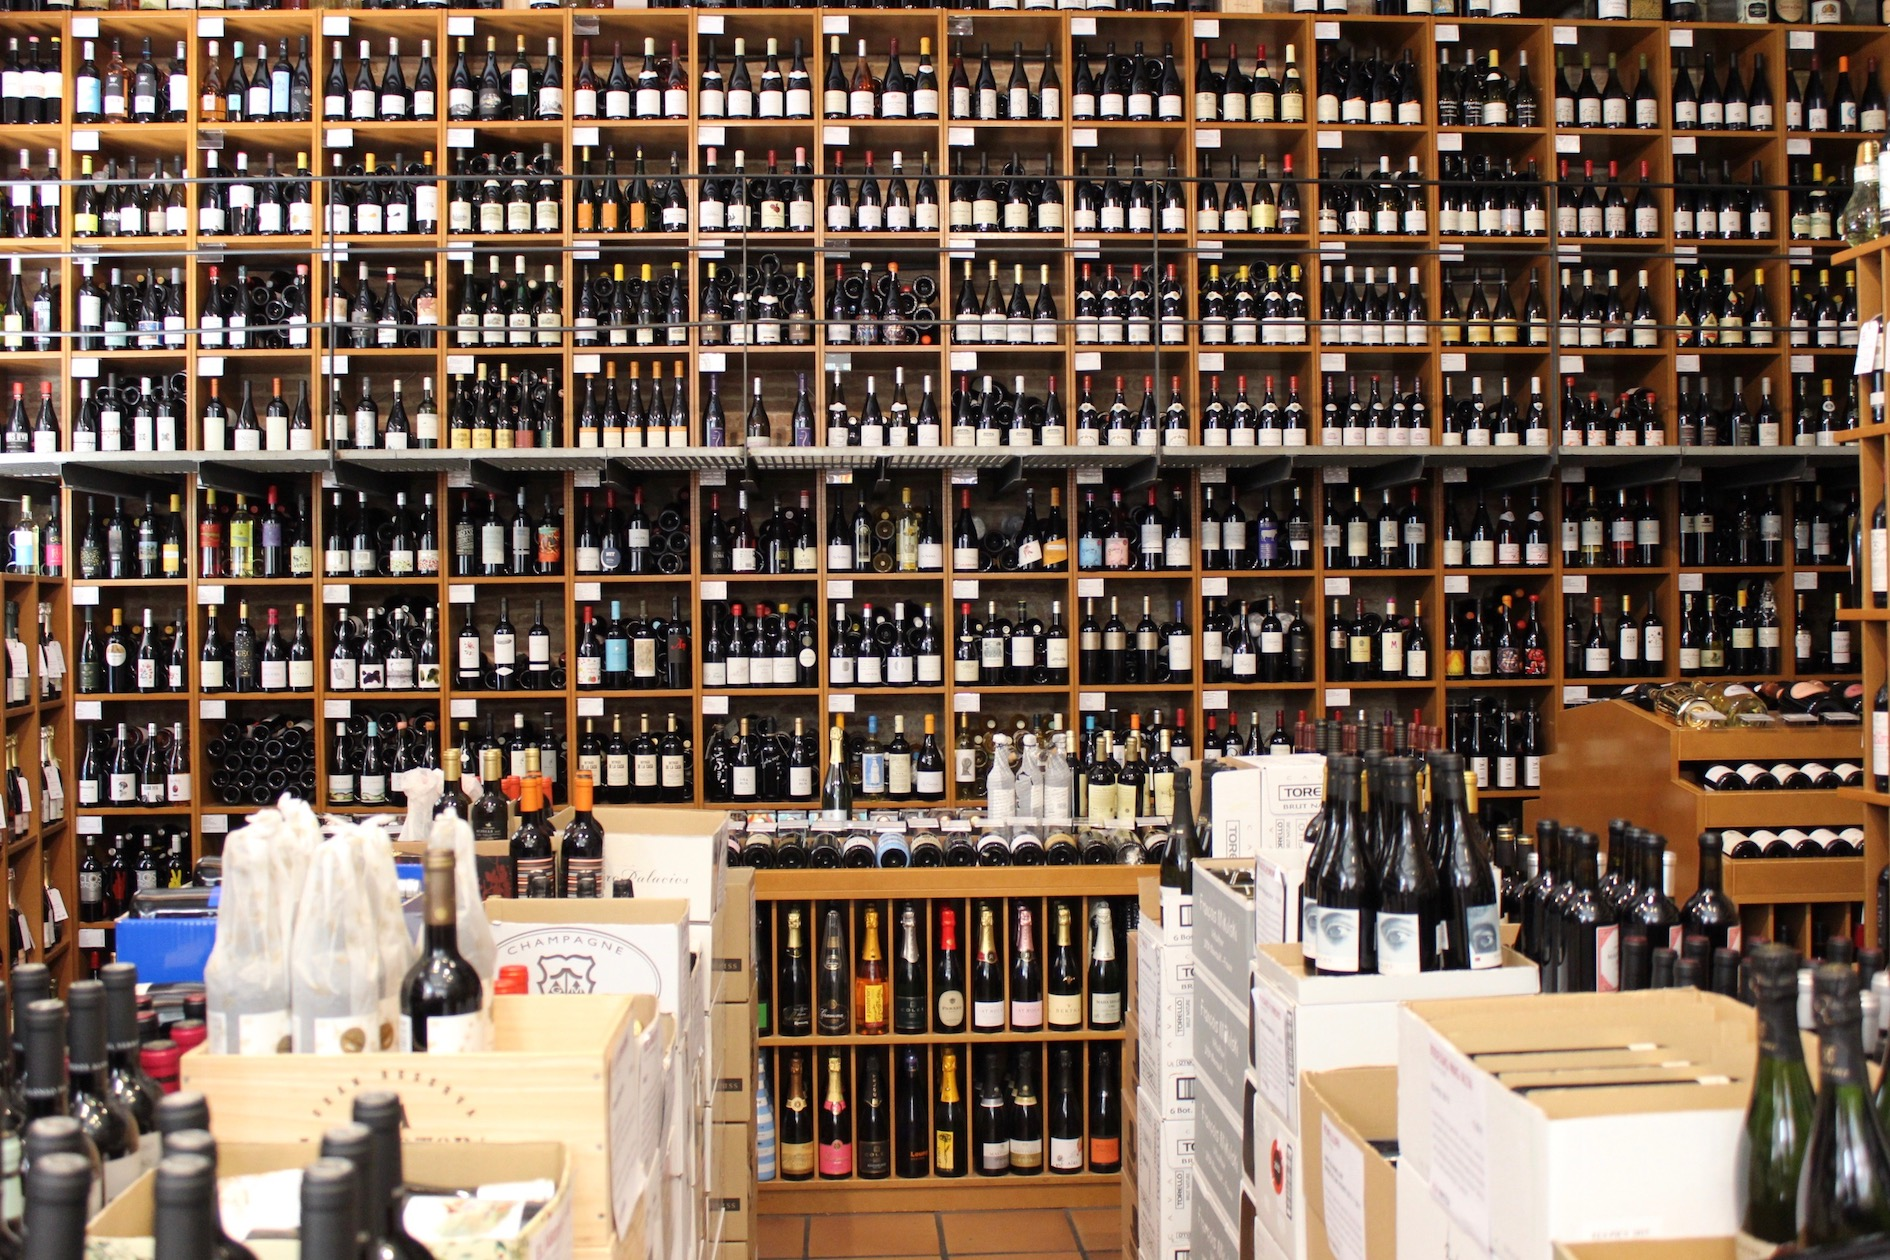 The extraordinary wine collection at Vila Viniteca